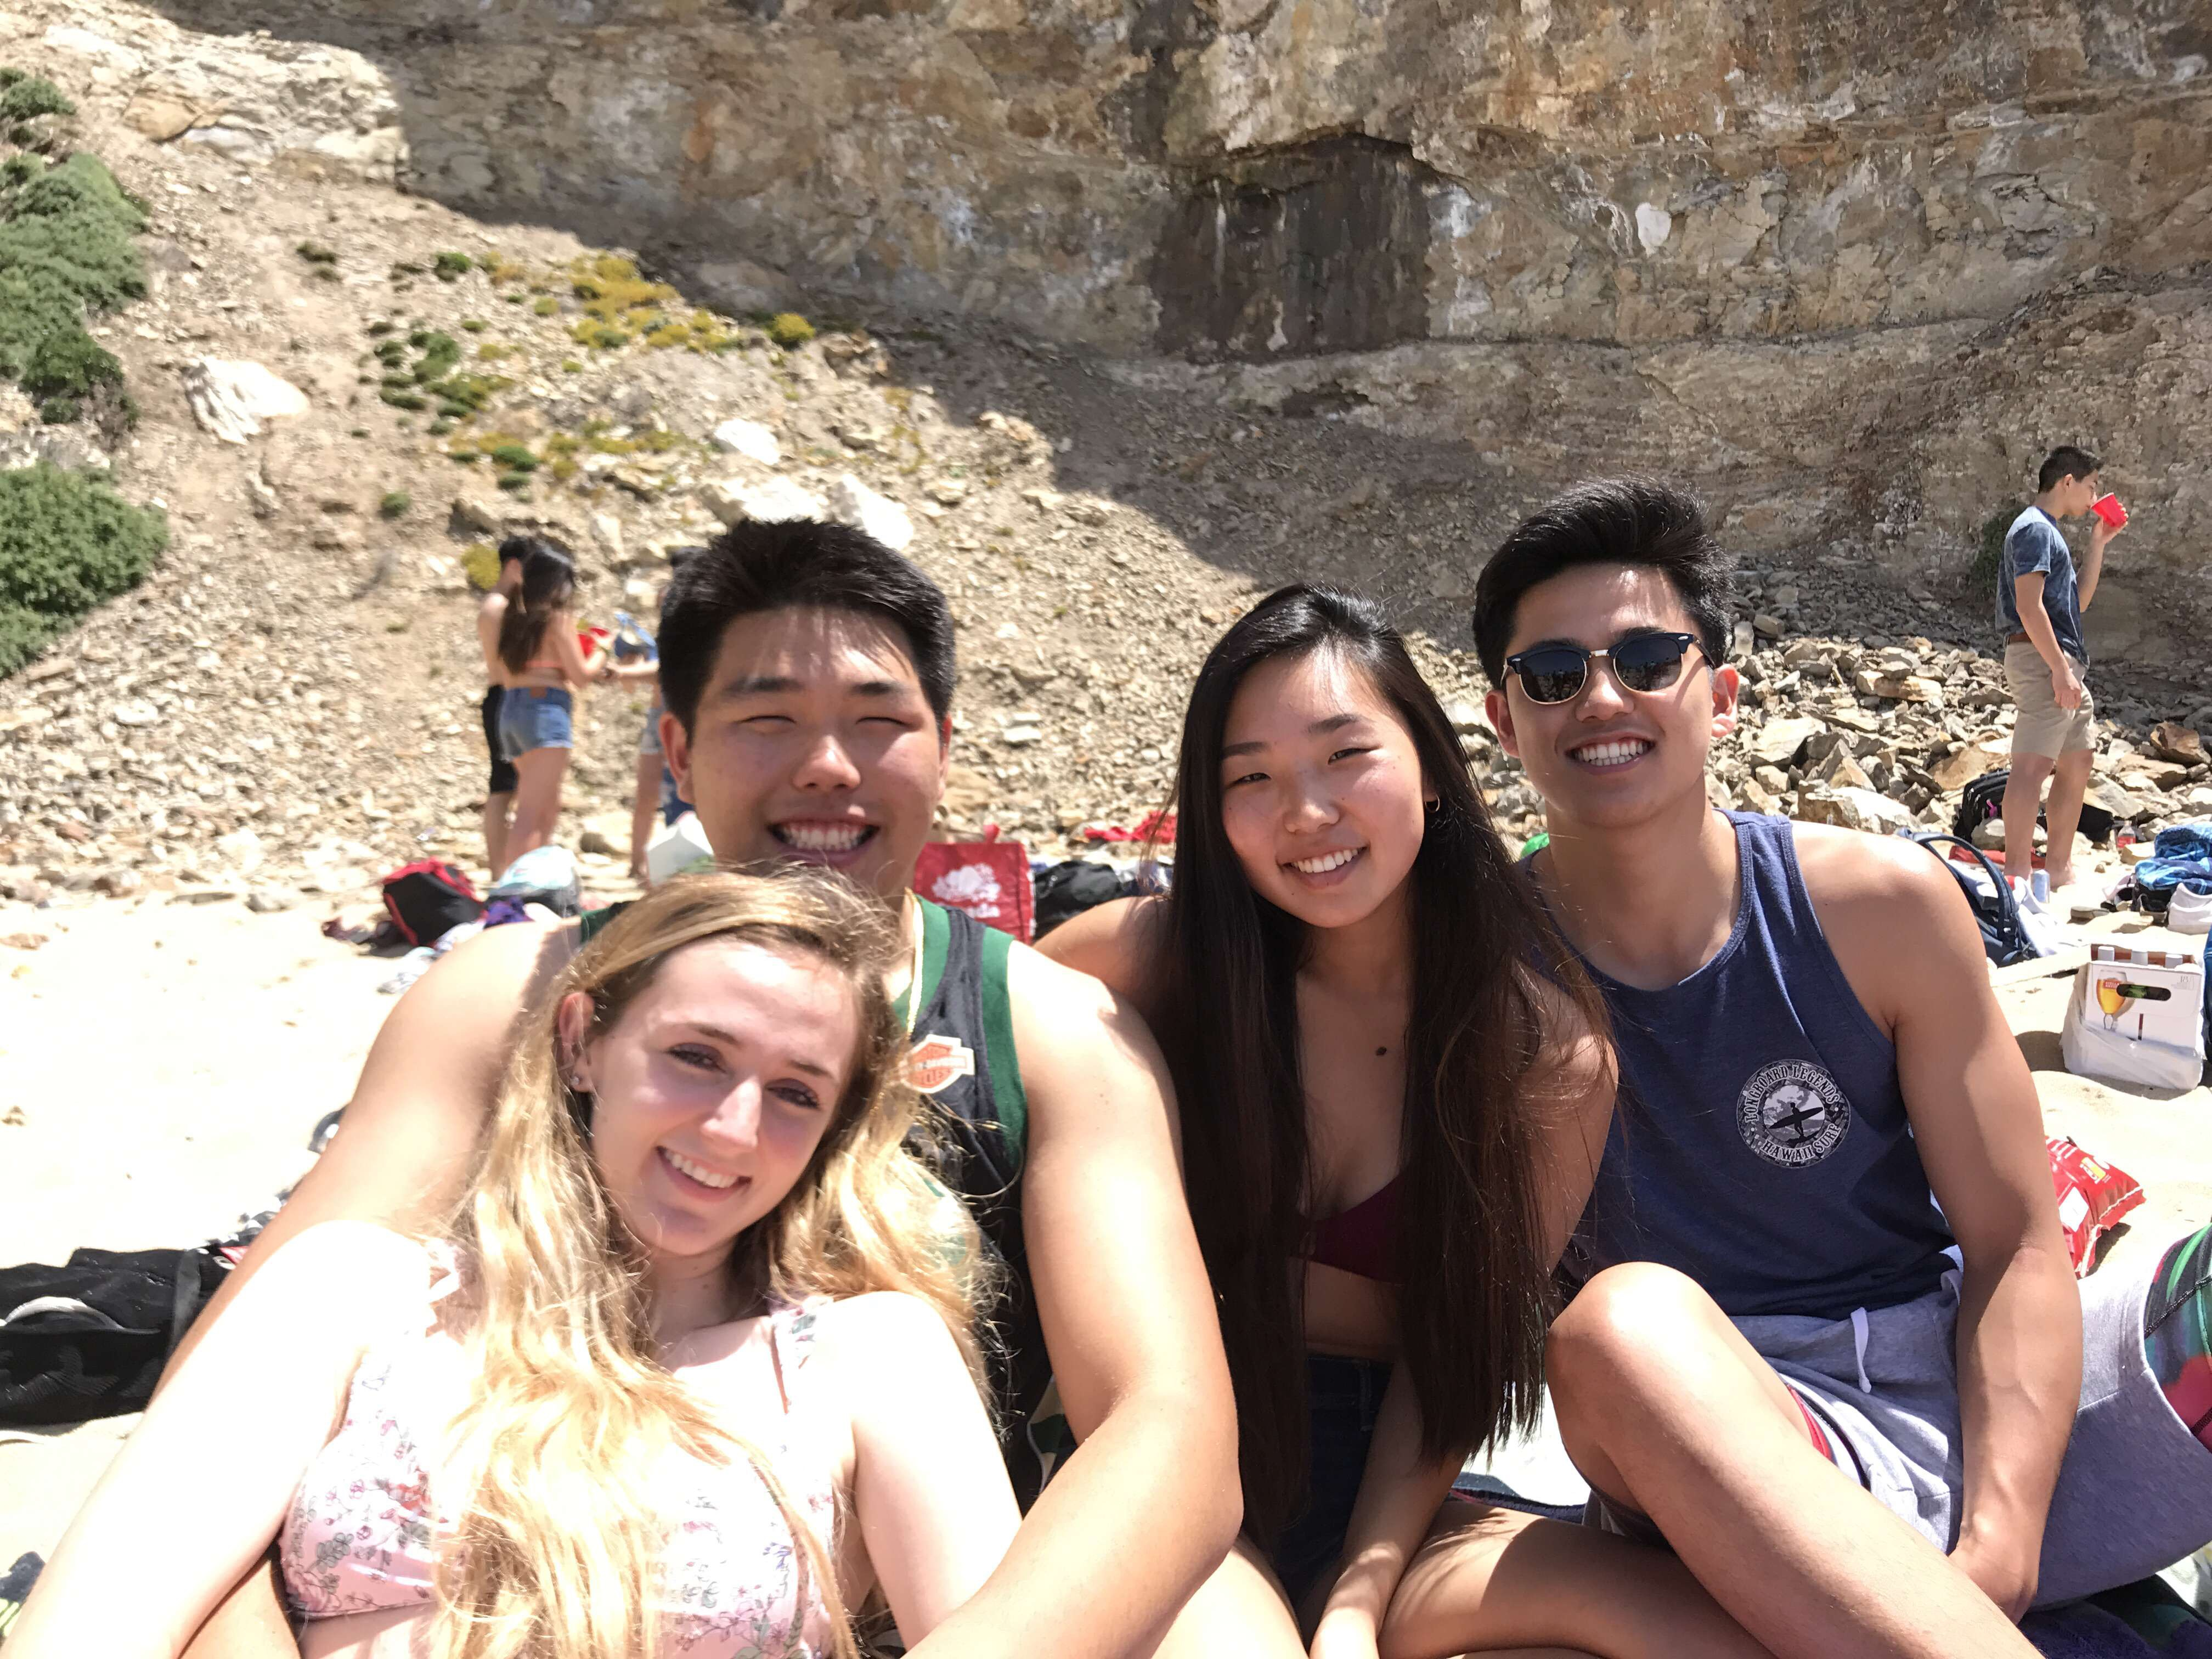 Senior Ashley Pae and her friends relaxed on the beach to celebrate the end of the year. Photo courtesy of Ashley Pae.